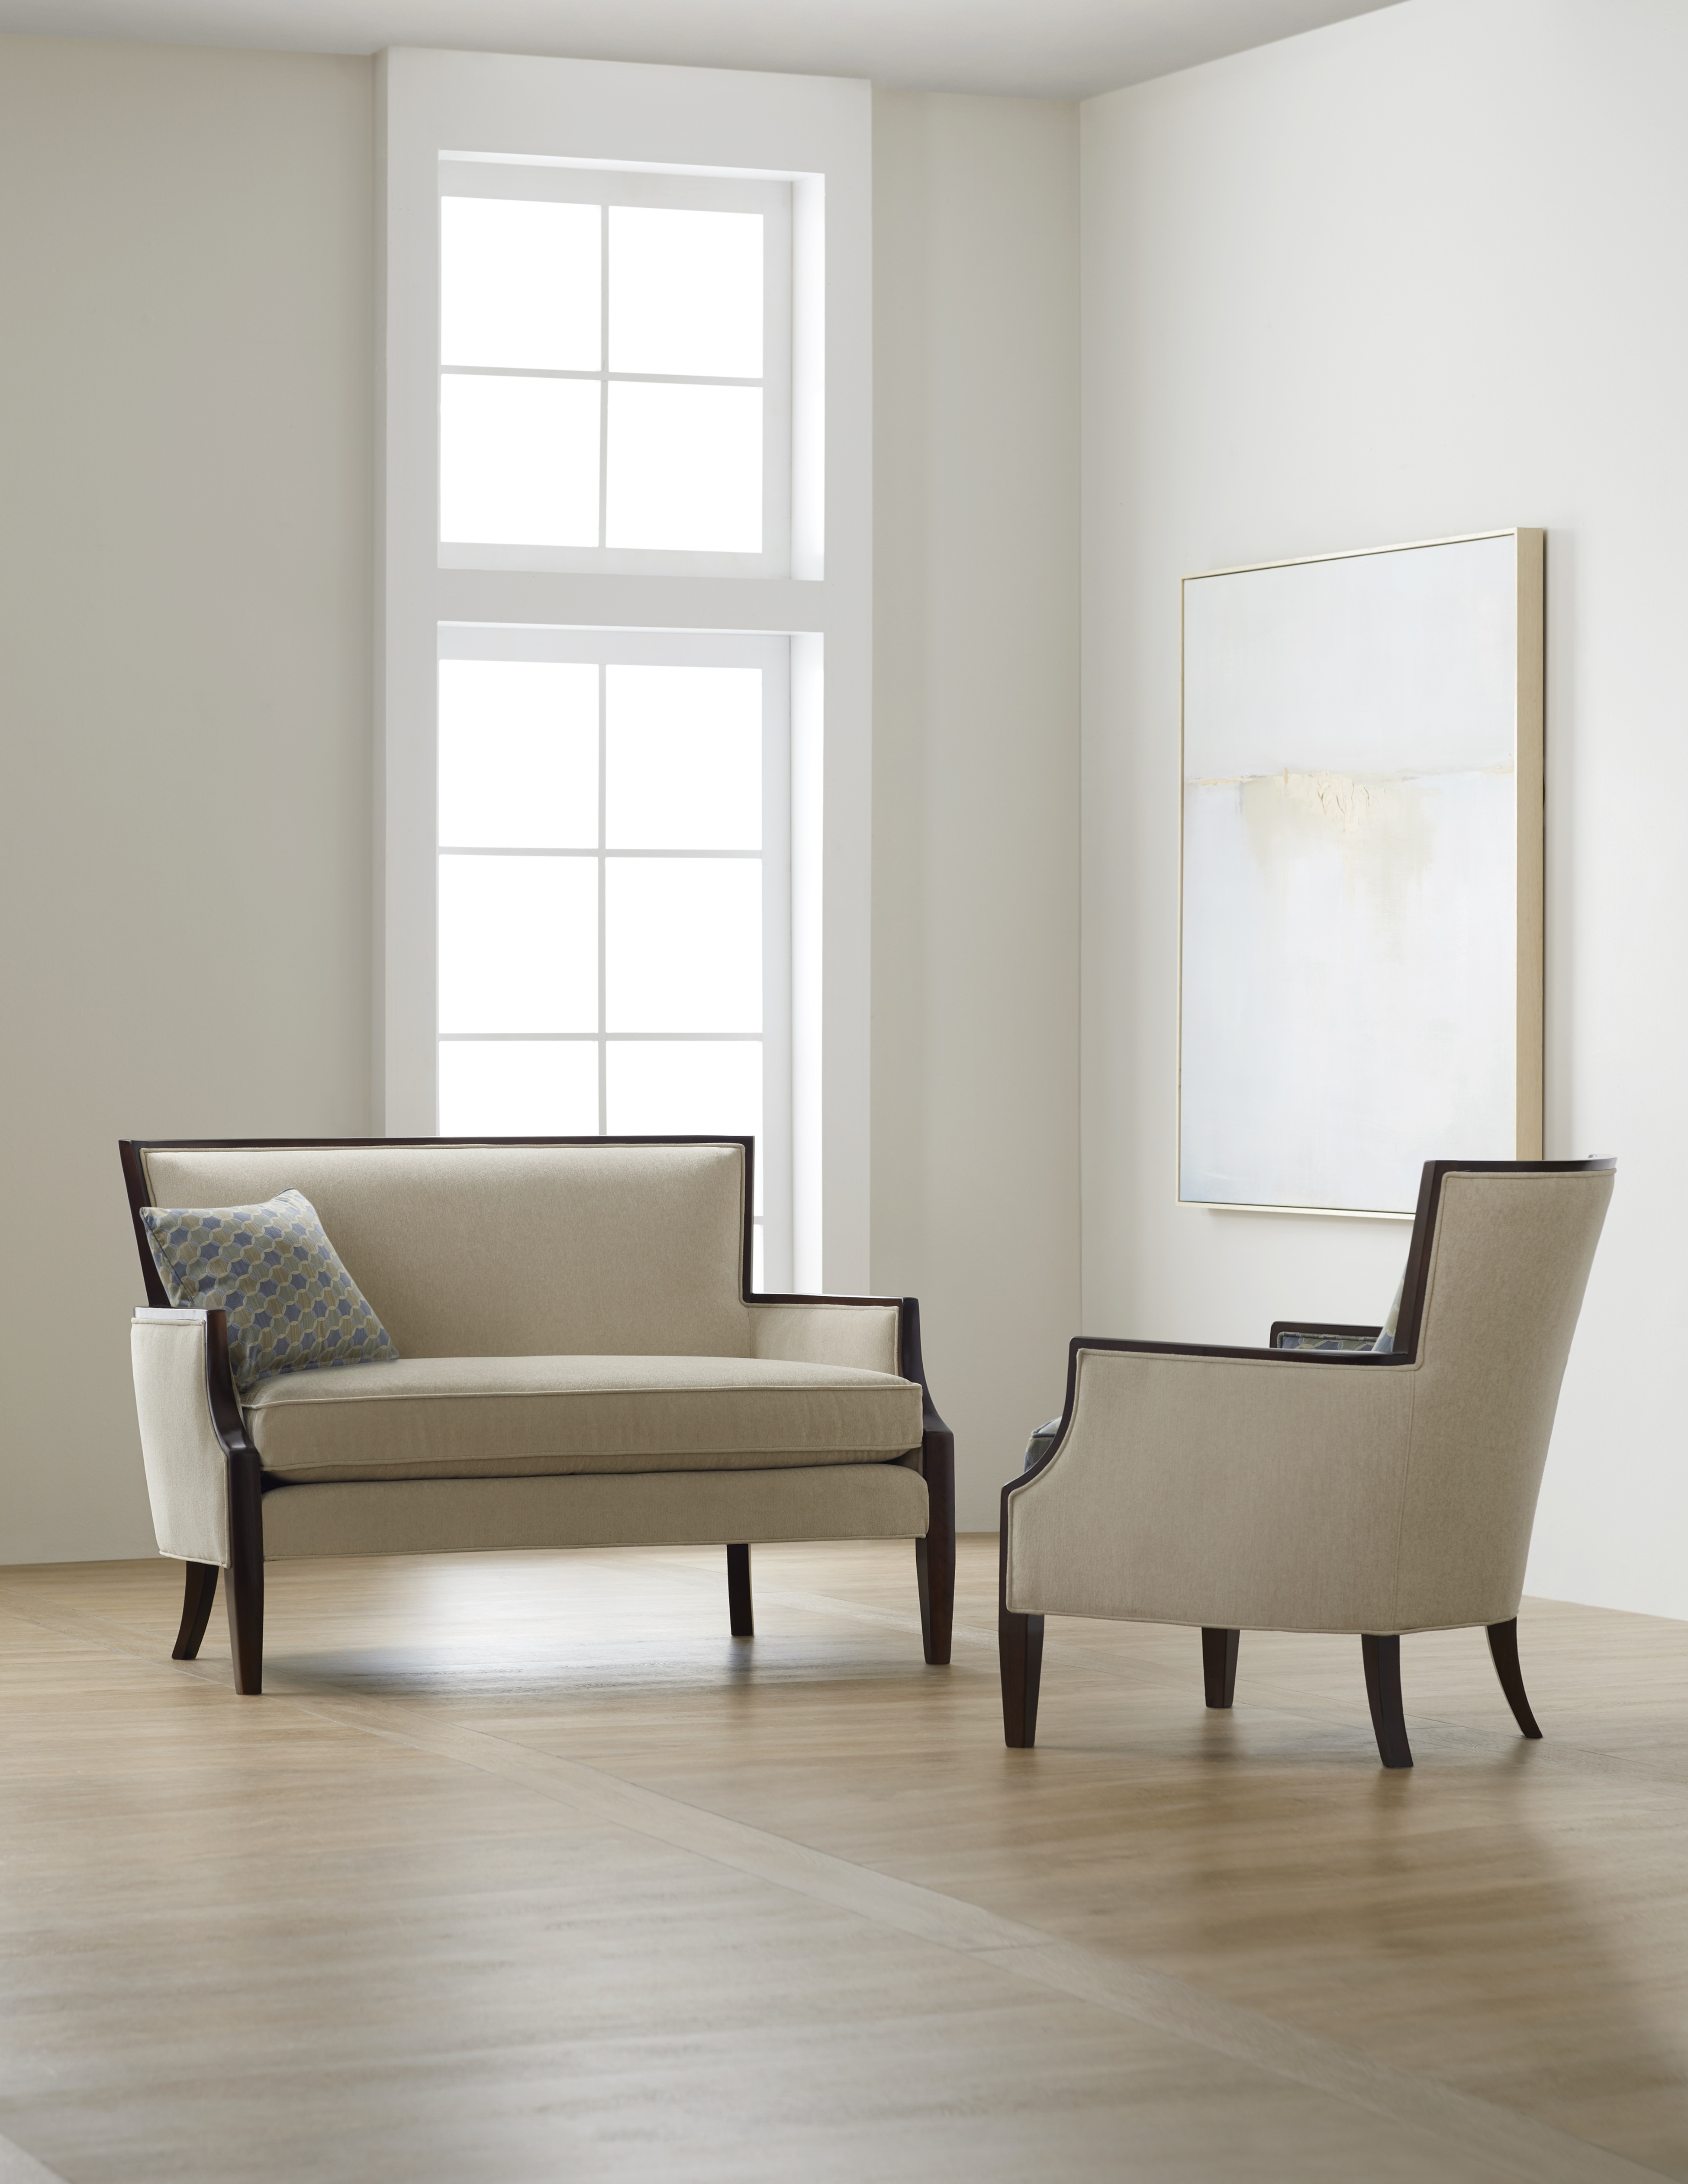 Darby Settee H Contract Furniture